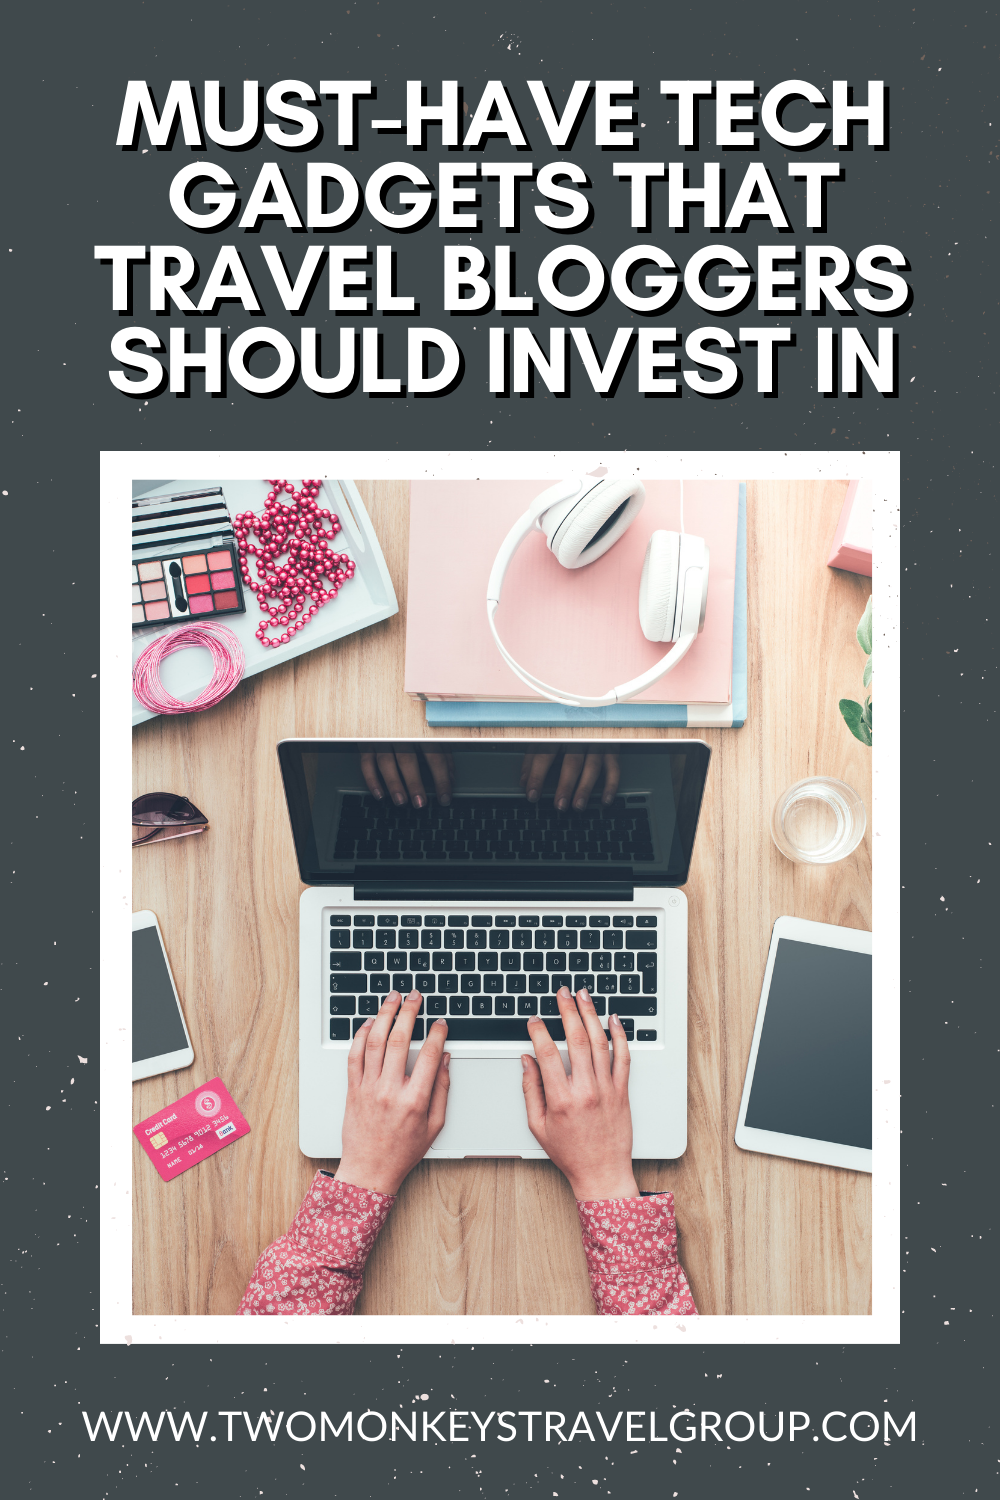 5 Must Have Tech Gadgets that Travel Bloggers Should Invest In